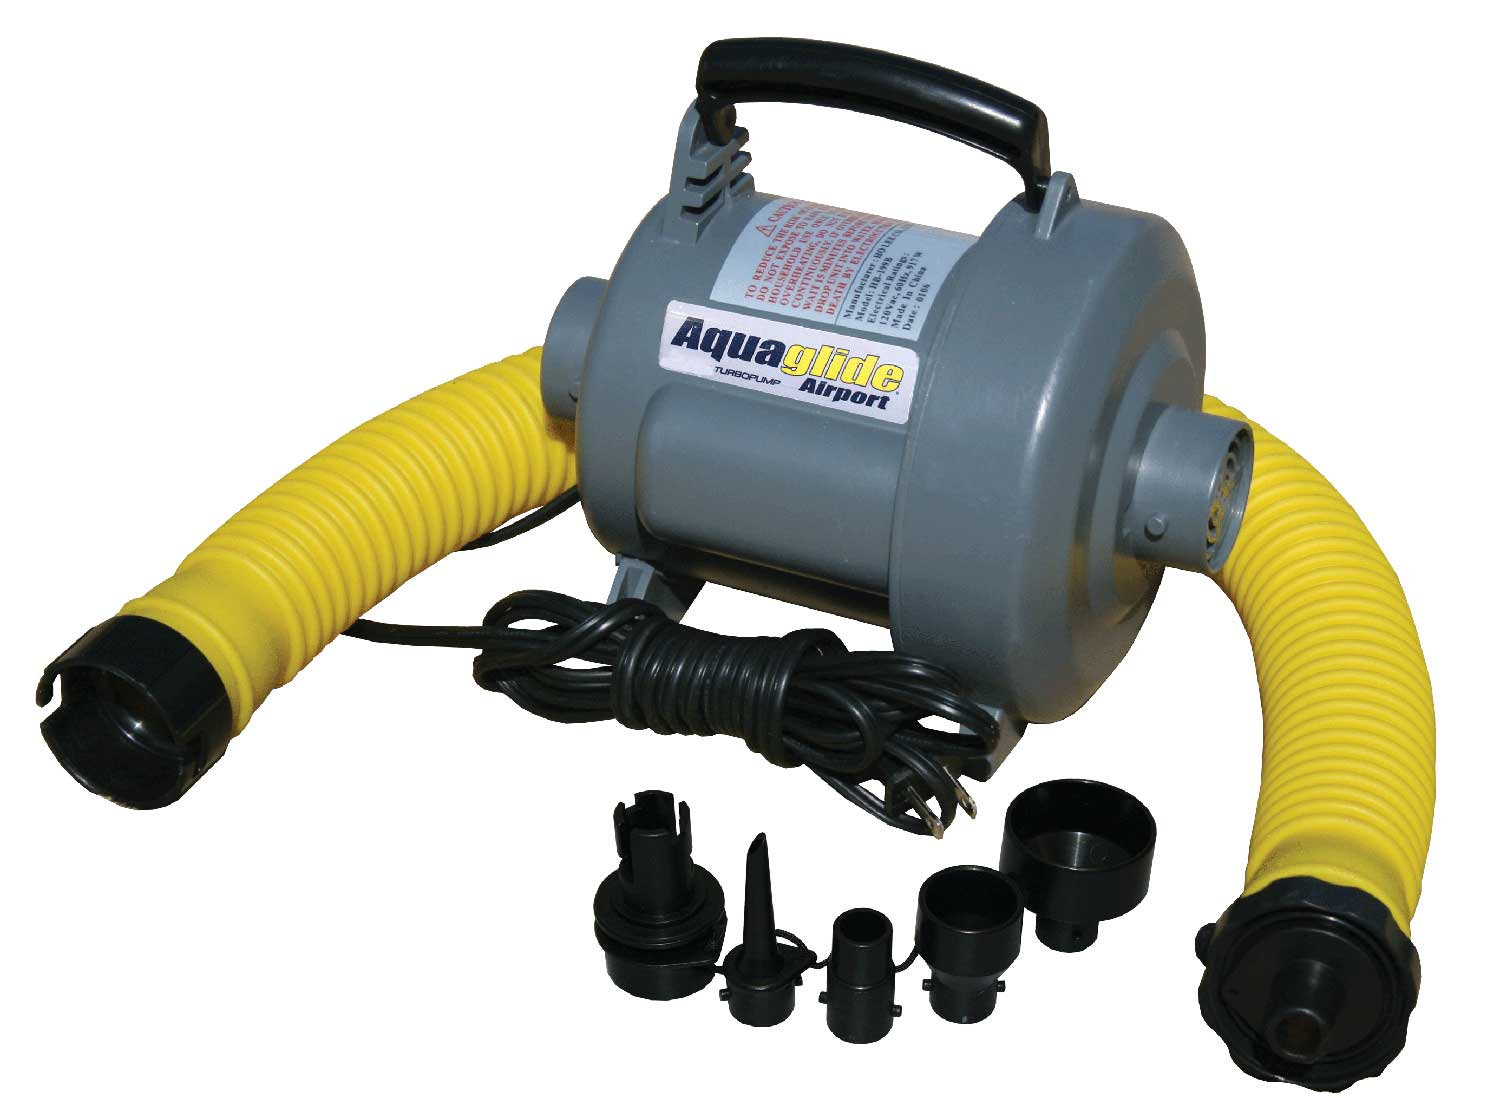 "Wake Extremely powerful 110v electric pump for watersports and Platinum aquapark items. Our highest volume pump, the Turbo 110v is specifically designed for inflating towables and large aquapark items with shocking speed. Powerful pump motor has the extra muscle needed to reach the proper pressure quickly (2.8 psi max). Convenient deflate option saves the day (at the end of the day). Extra wide 1 u"" Kink-proof hose comes with attached fittings for Stem, Boston, Rapid Inflate, Fish Eye, and Halkey-Roberts valves. 110vAC power source, 2.8 psi max. - $79.99"